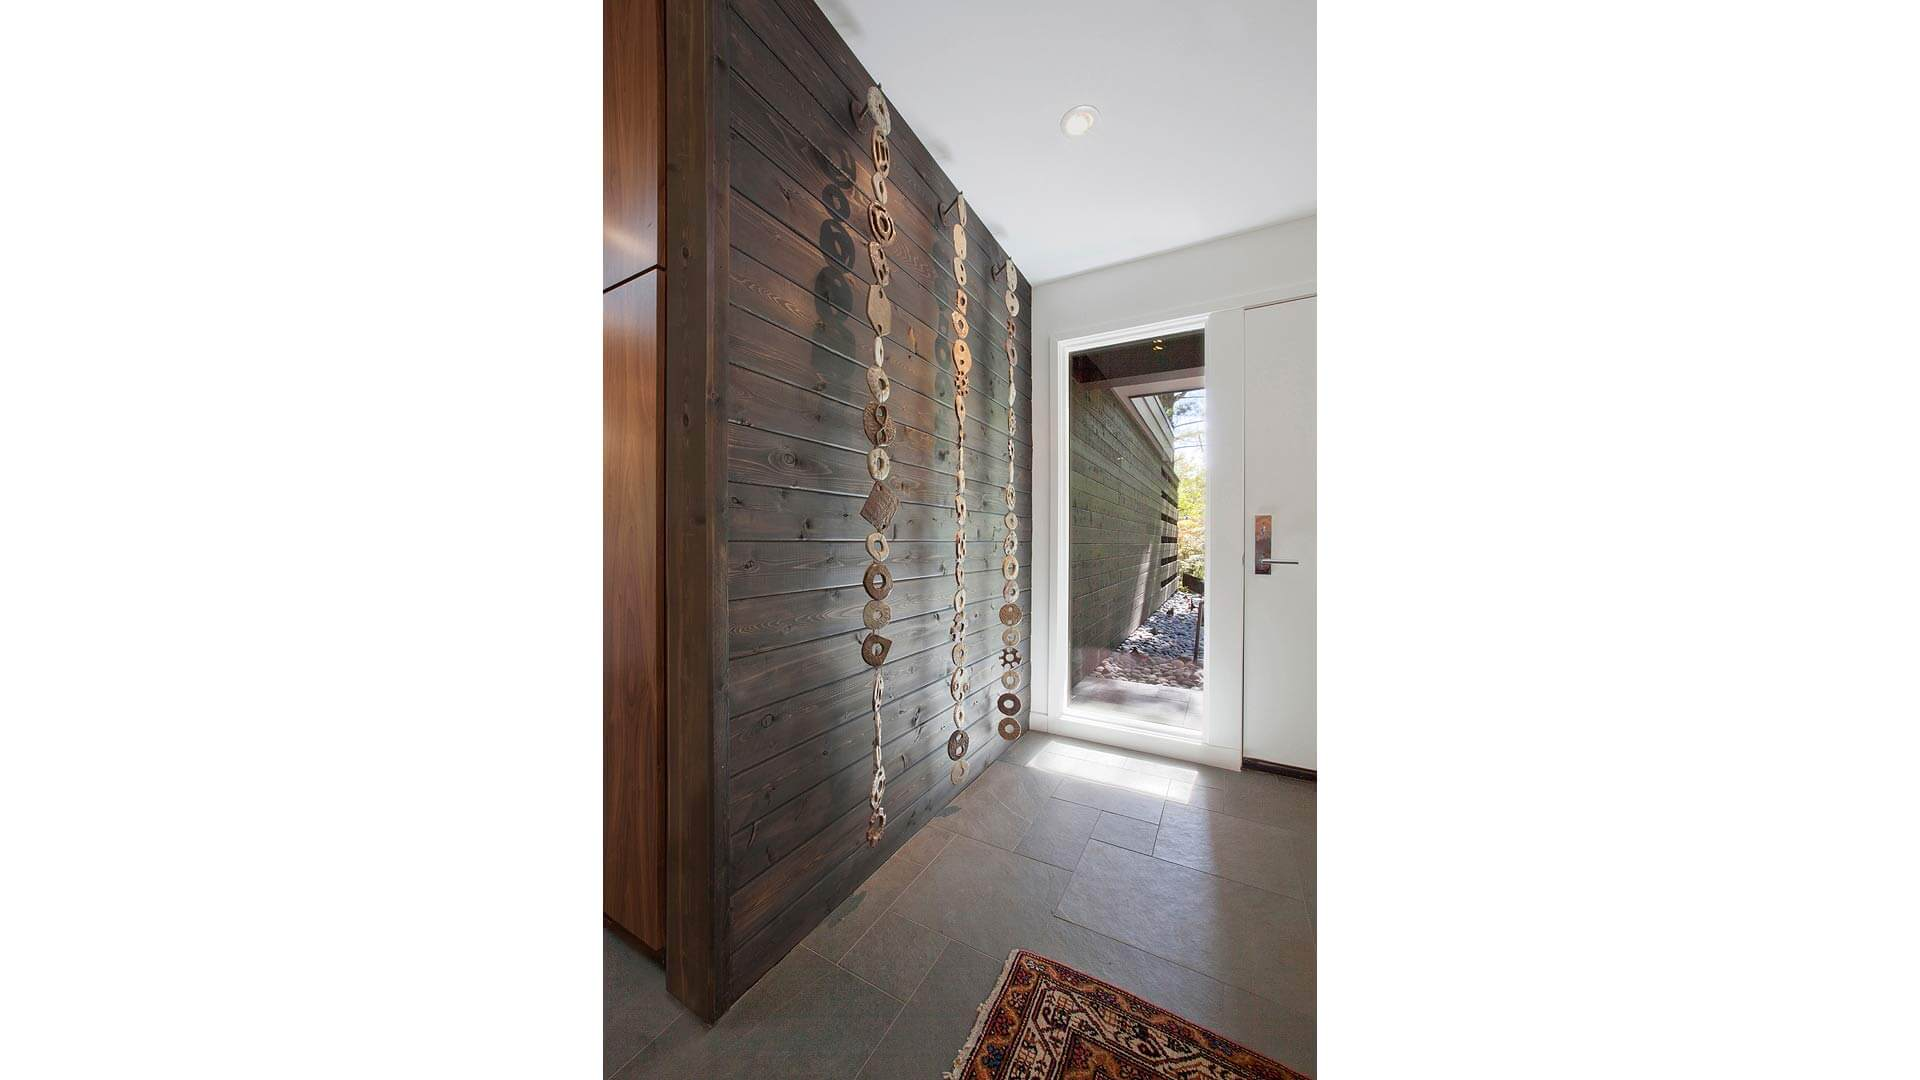 Mid Mod Entry Wall, Foyer. red entry door, entry skylight, track lighting, Ceramic Art, grey slate entry floor tile, custom artwork, Walnut Cabinetry, red area rug, inside-out entry wall - Midcentury Modern Renovation - 81st Street - Indianapolis, Christopher Short, Architect, HAUS Architecture